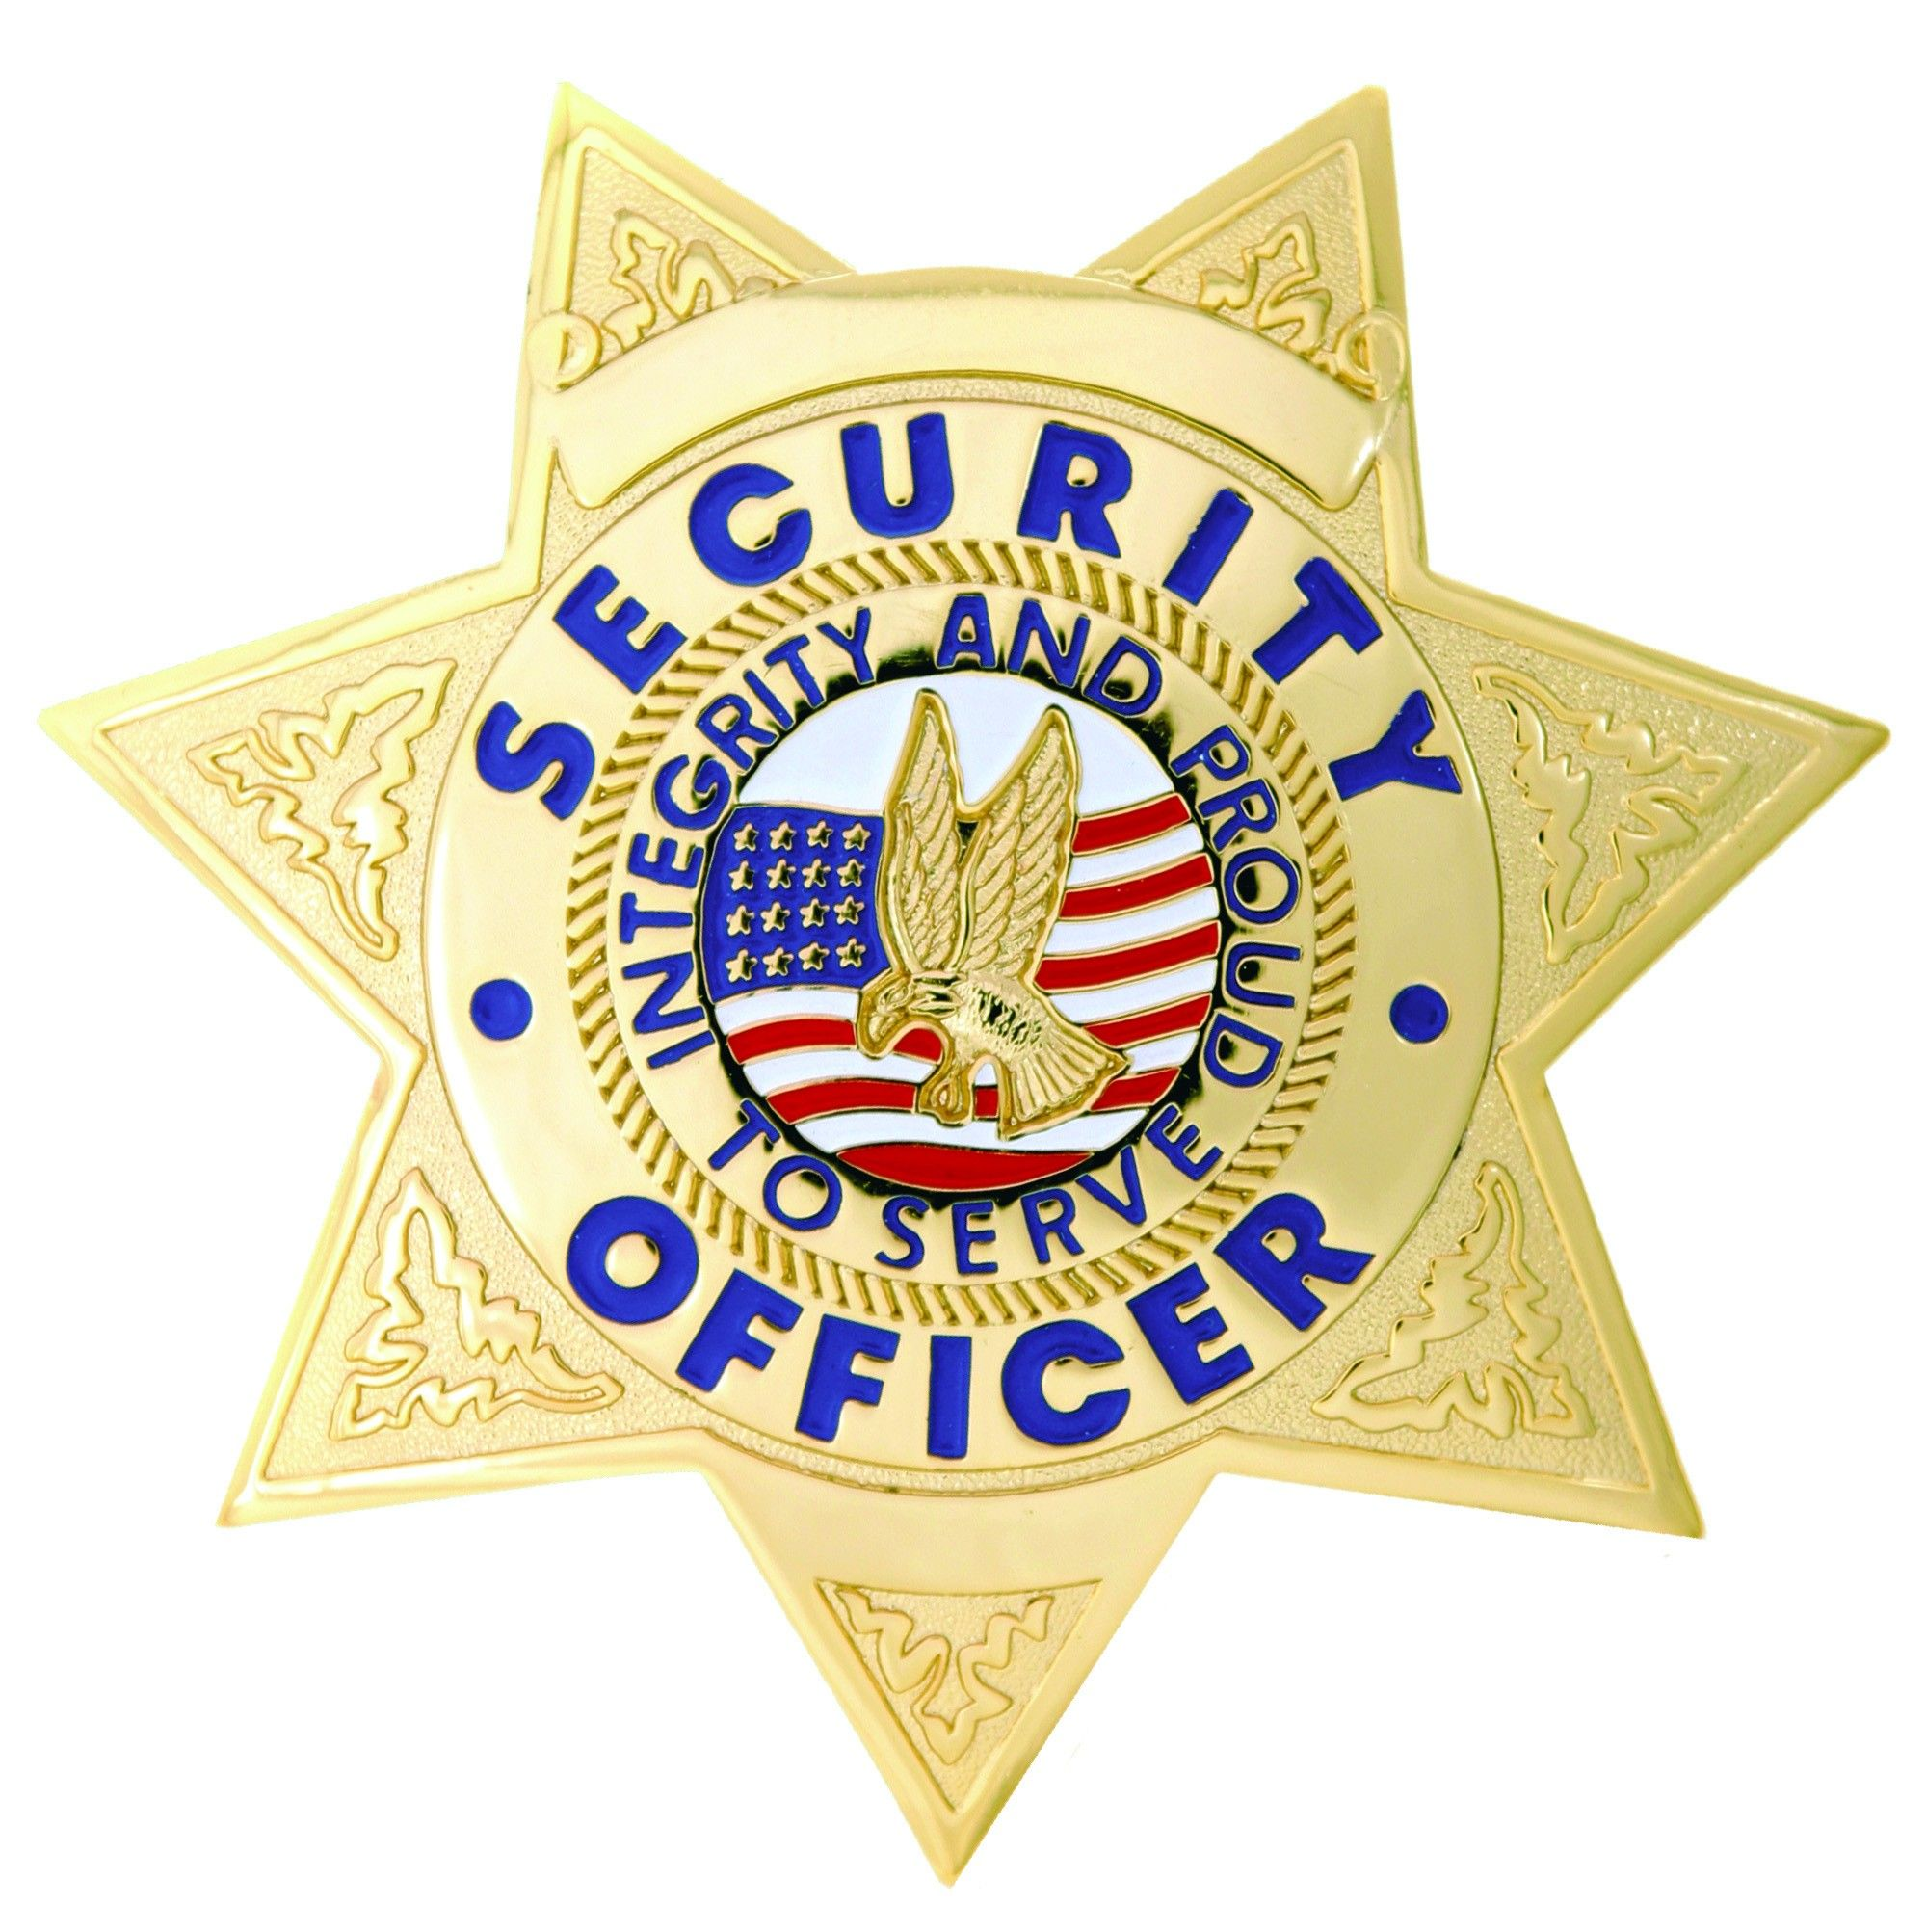 First Class Security Officer Gold 7 Point Star Badge